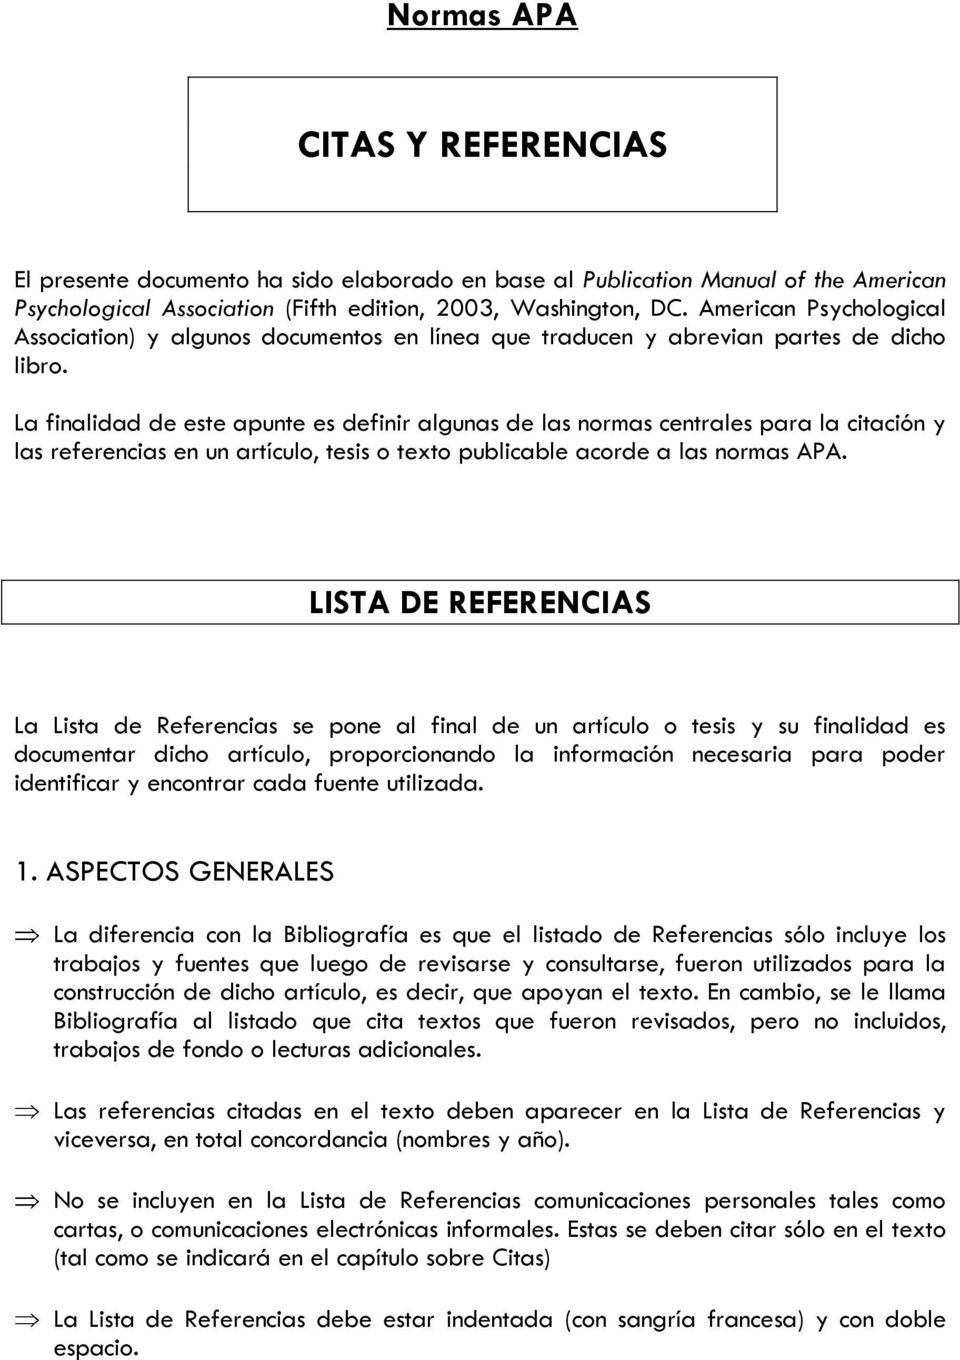 Normas Apa Citas Y Referencias Pdf Free Download